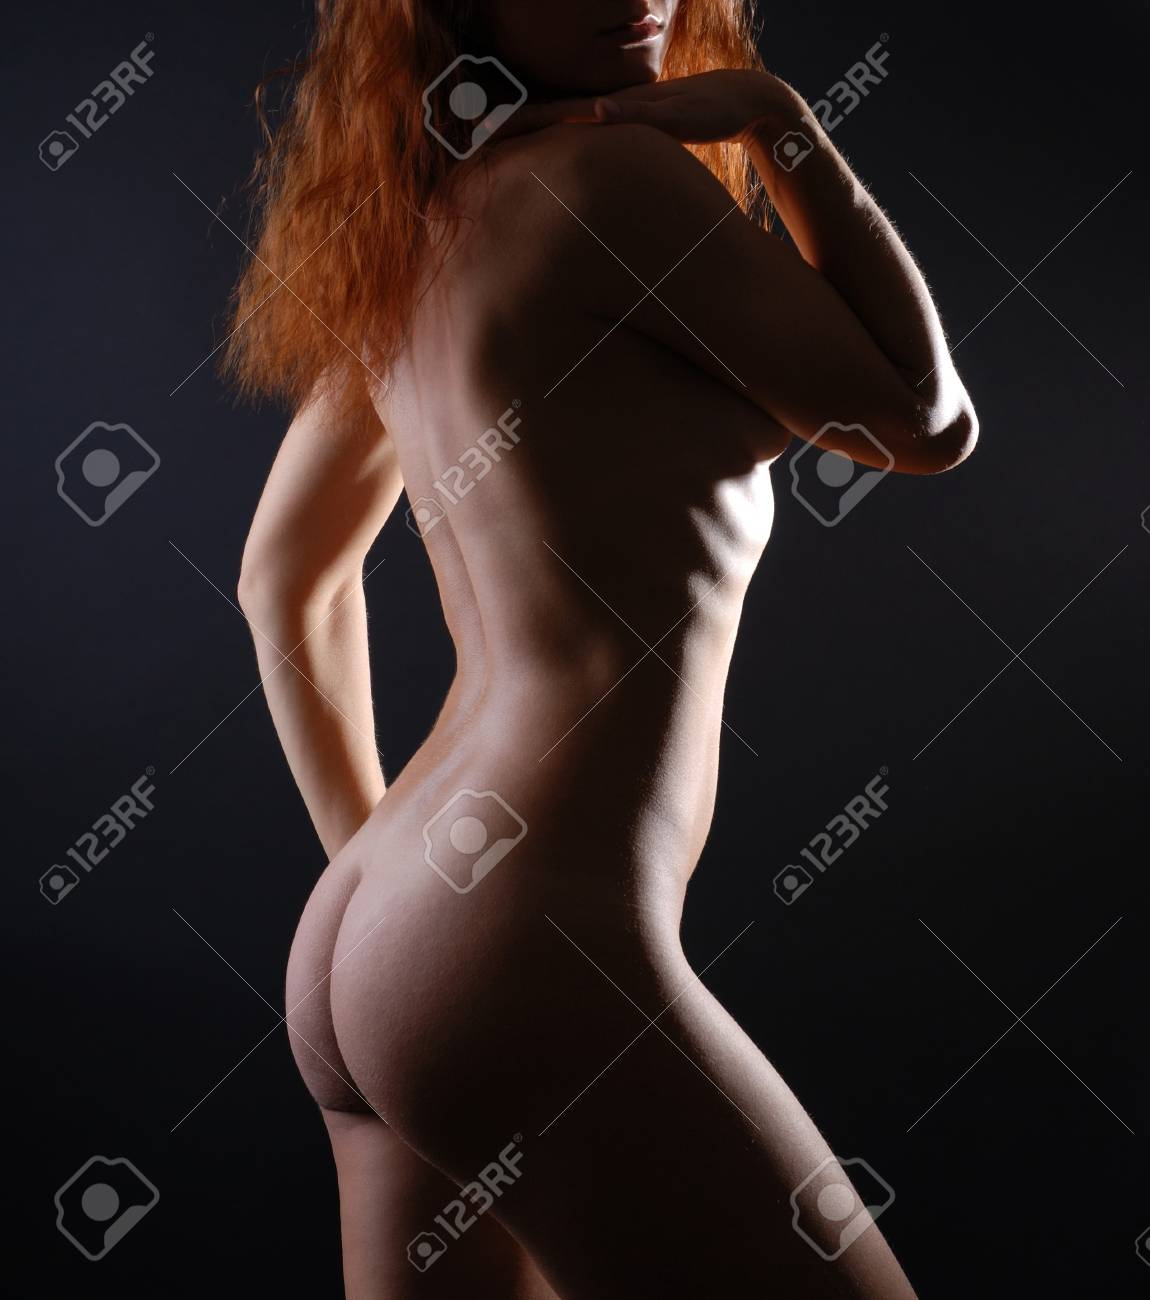 Tempting lines and curves of female body, side view Stock Photo - 4258401